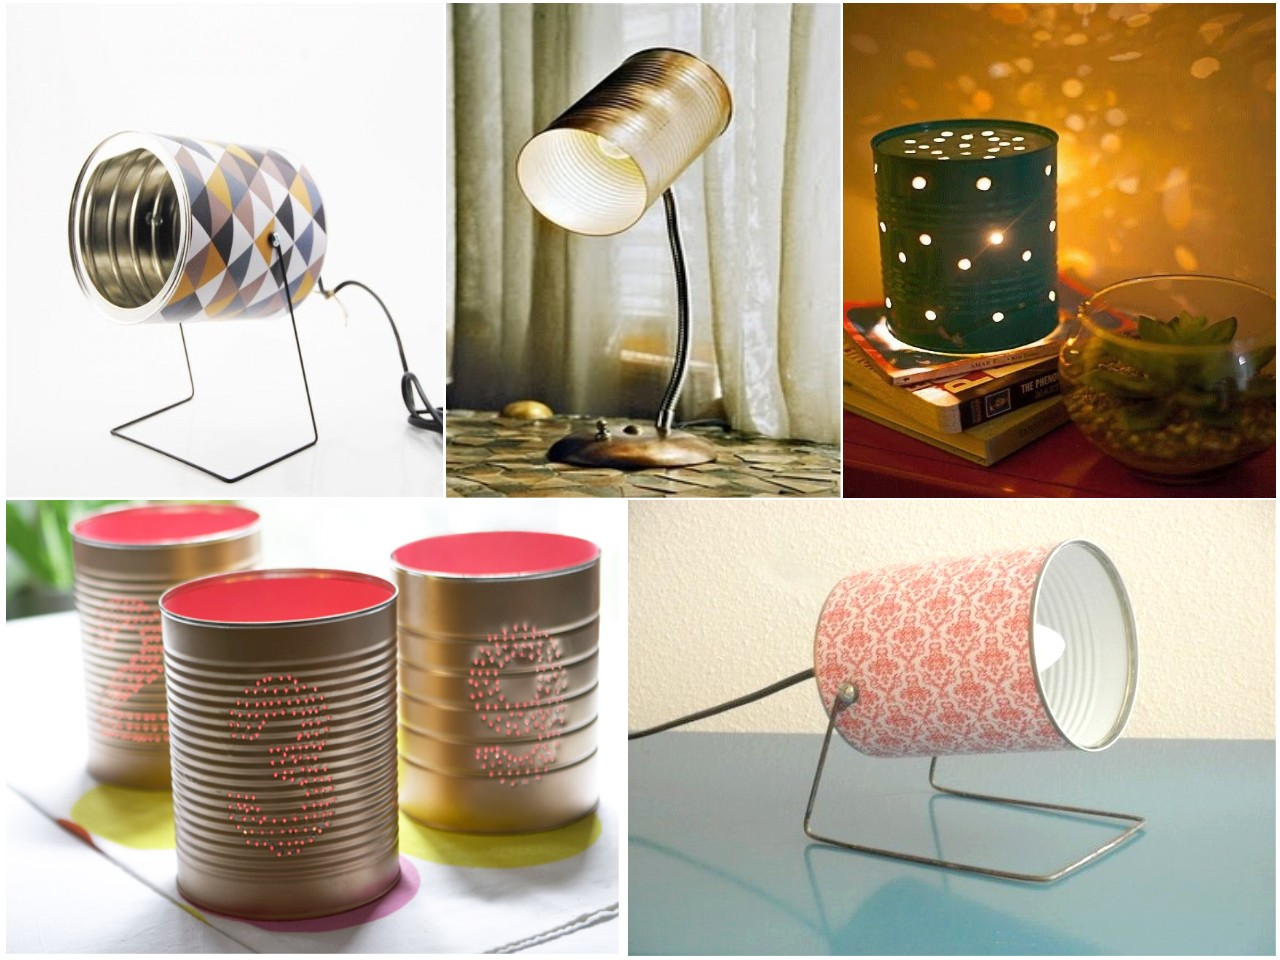 10 Ideas Originales De Reciclar Para Decorar Con Lamparas